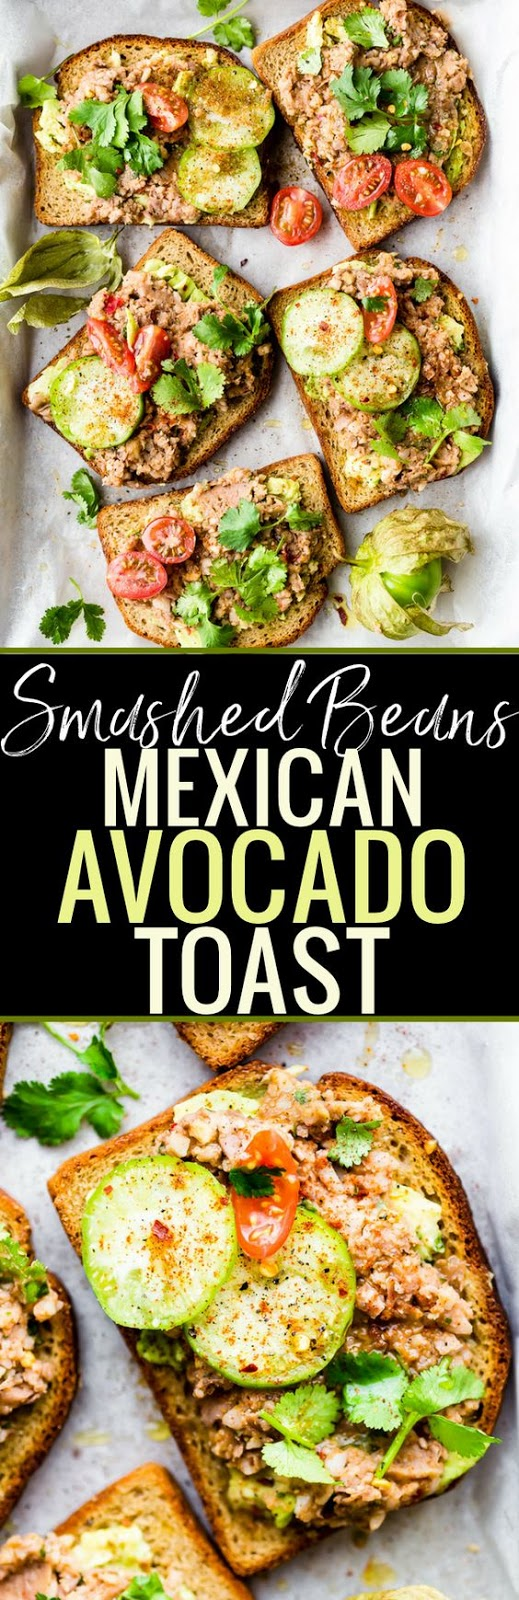 SMASHED MEXICAN BEANS AVOCADO TOAST {VEGAN FRIENDLY}